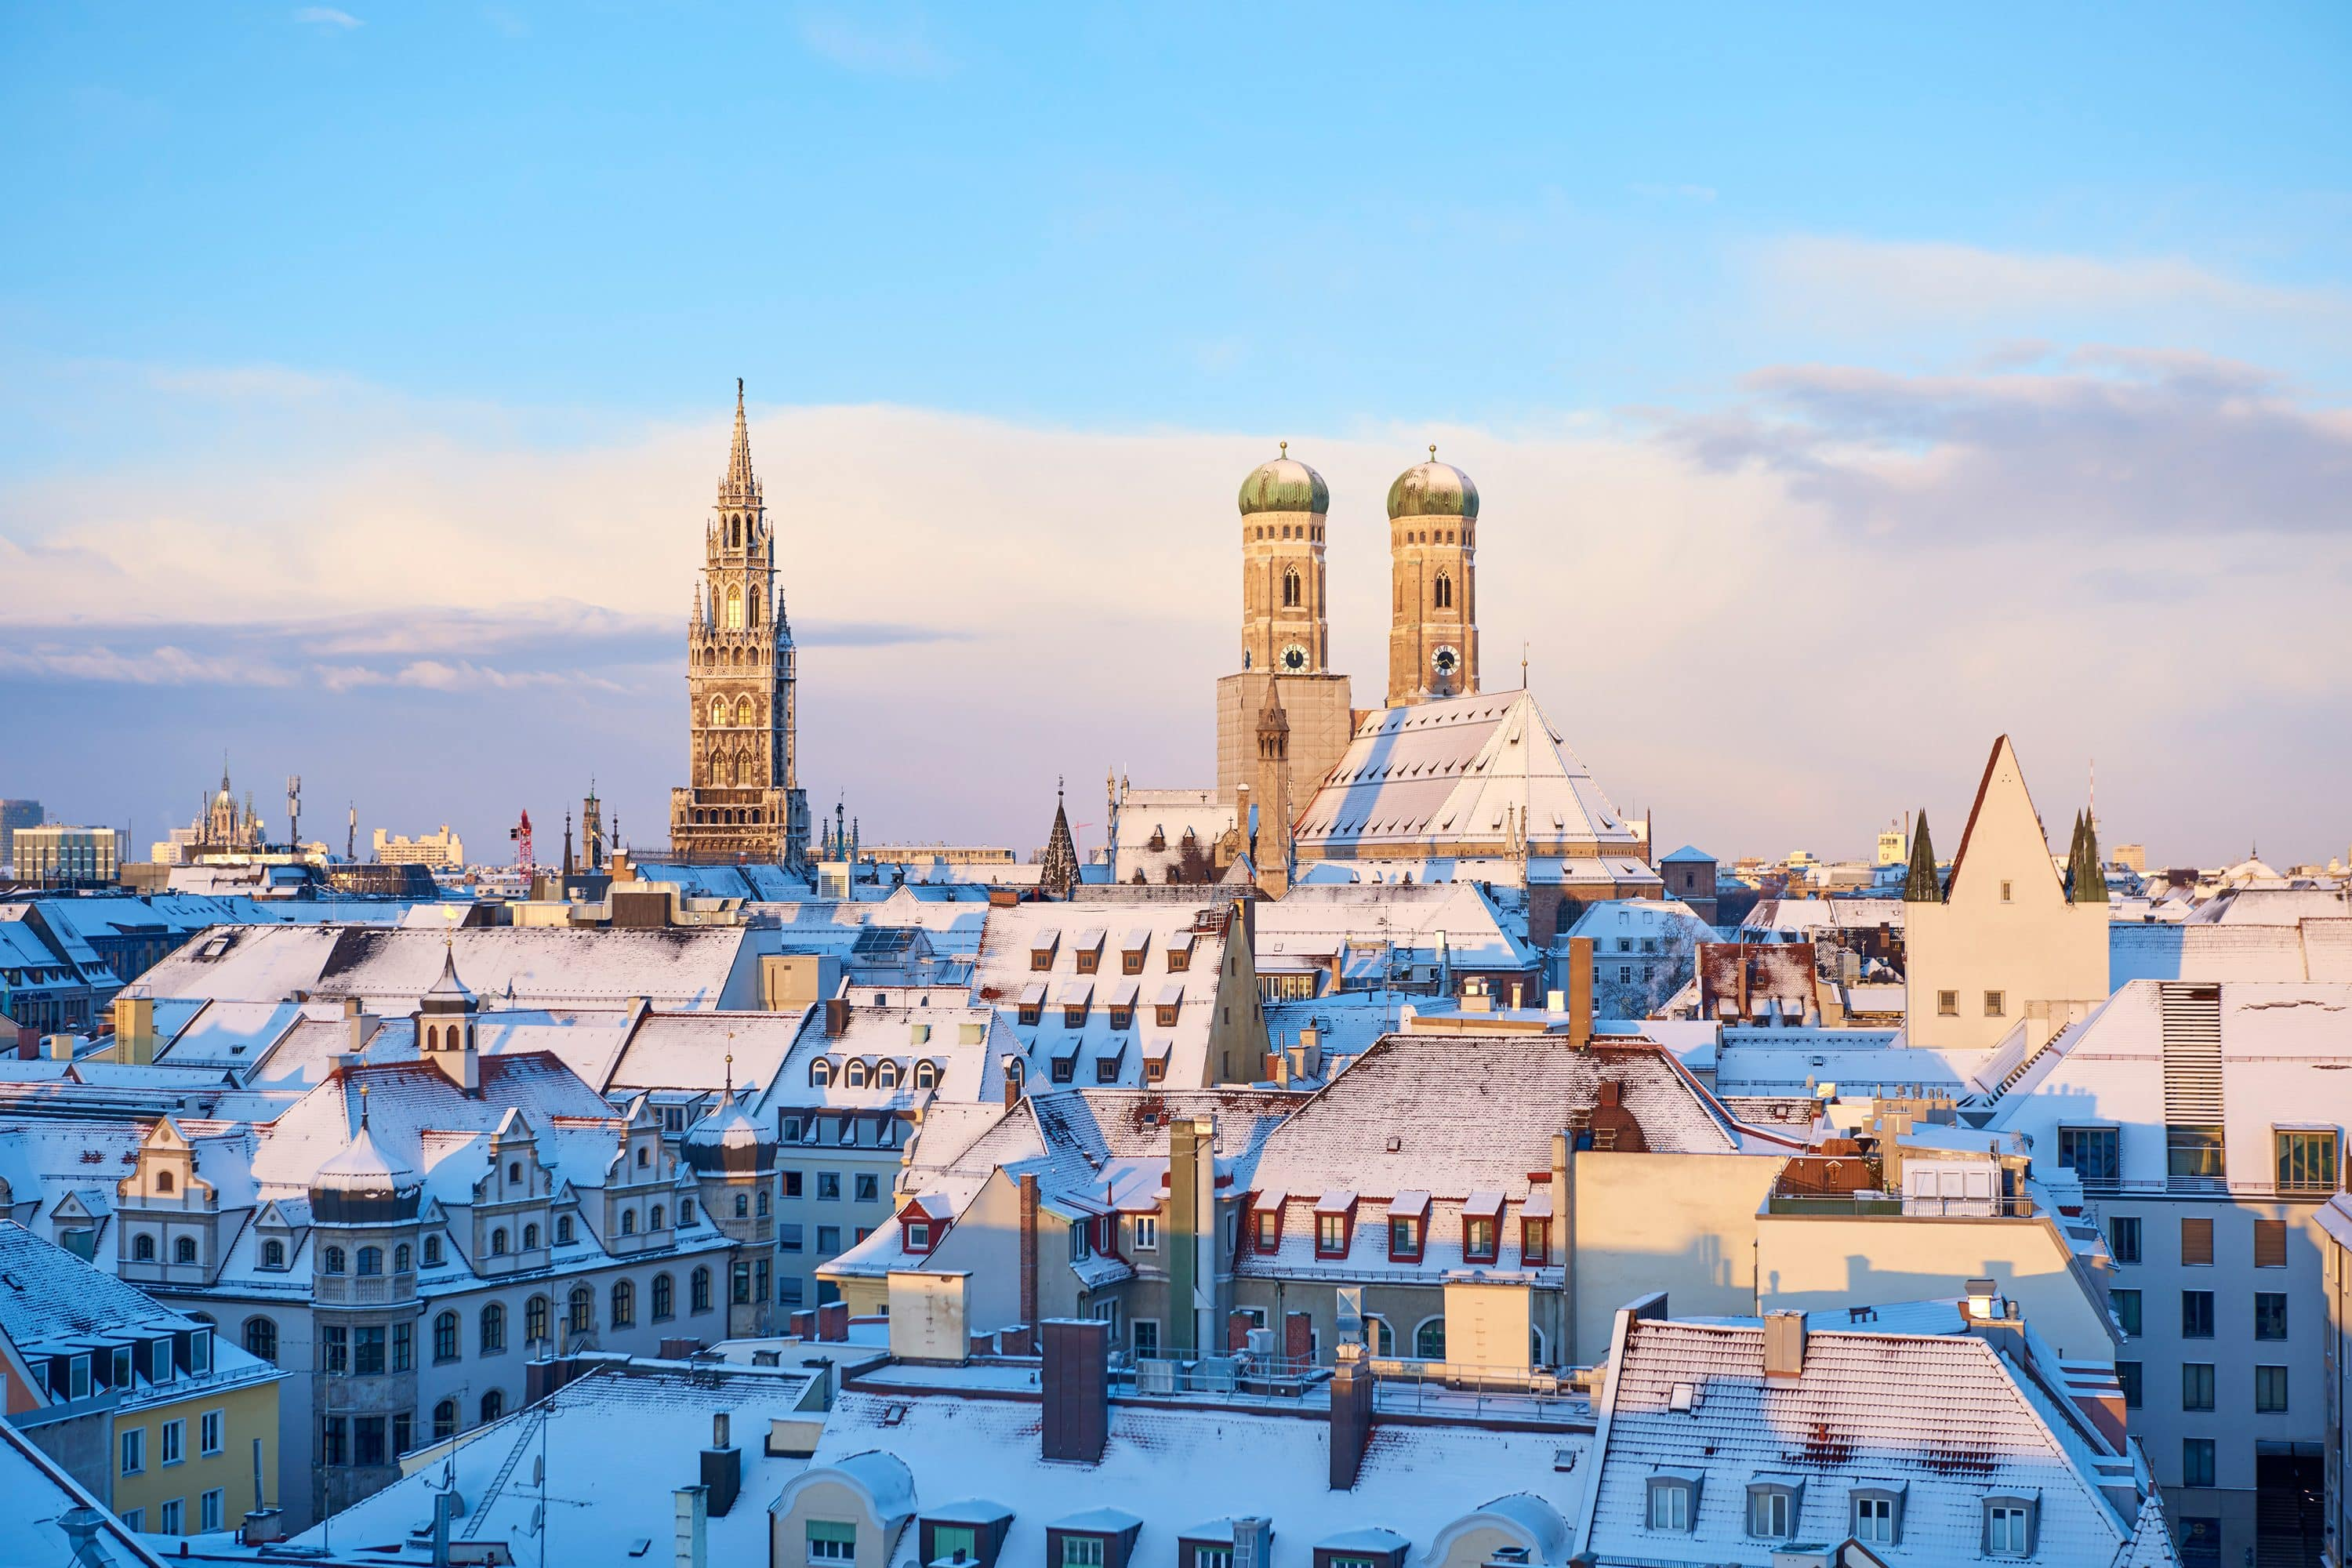 Snow-capped rooftops in Munich